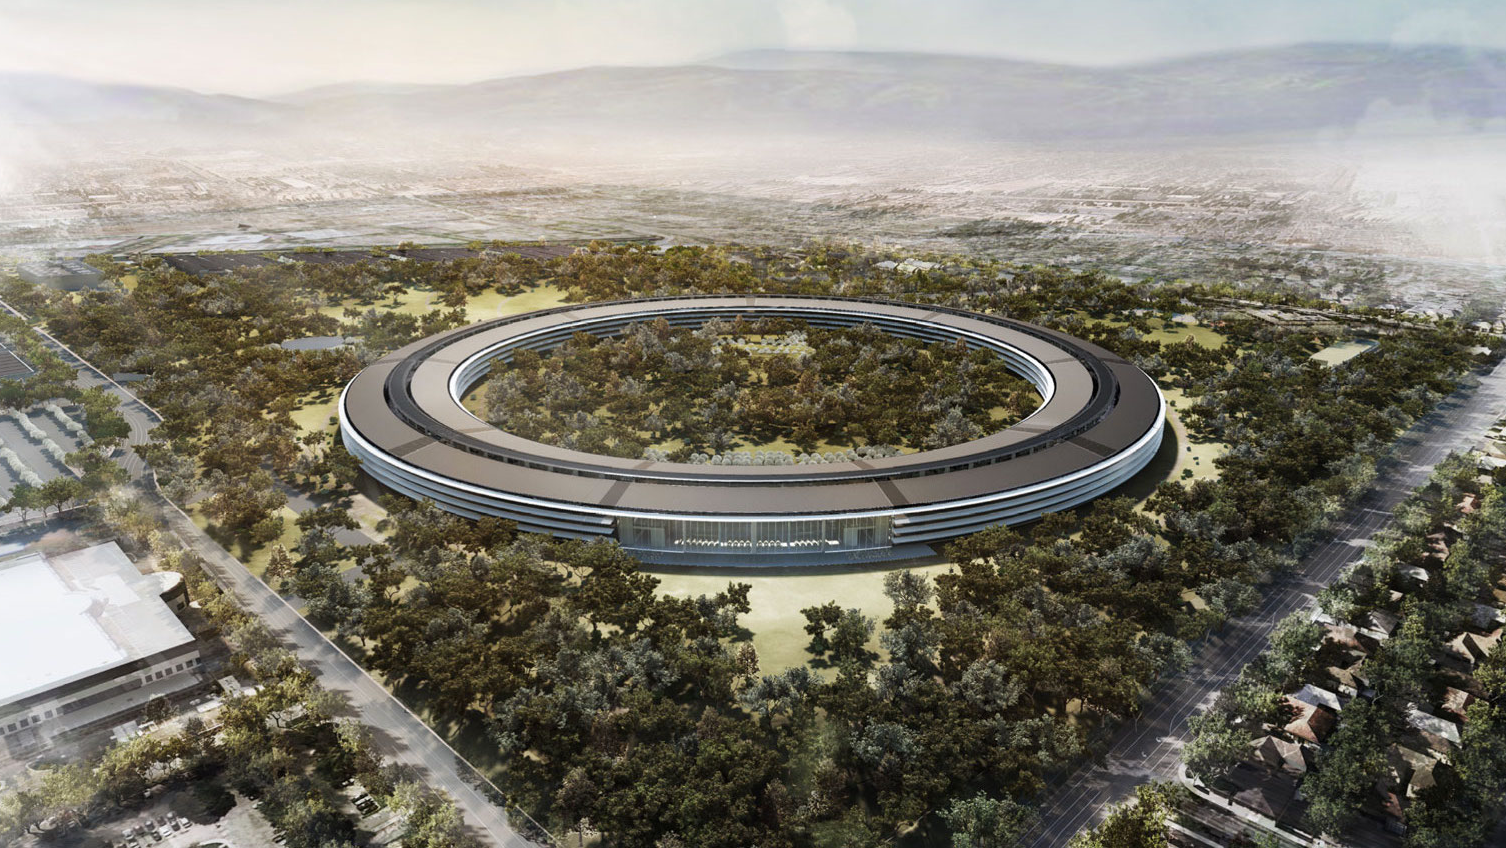 apple campus 2 render-16x9